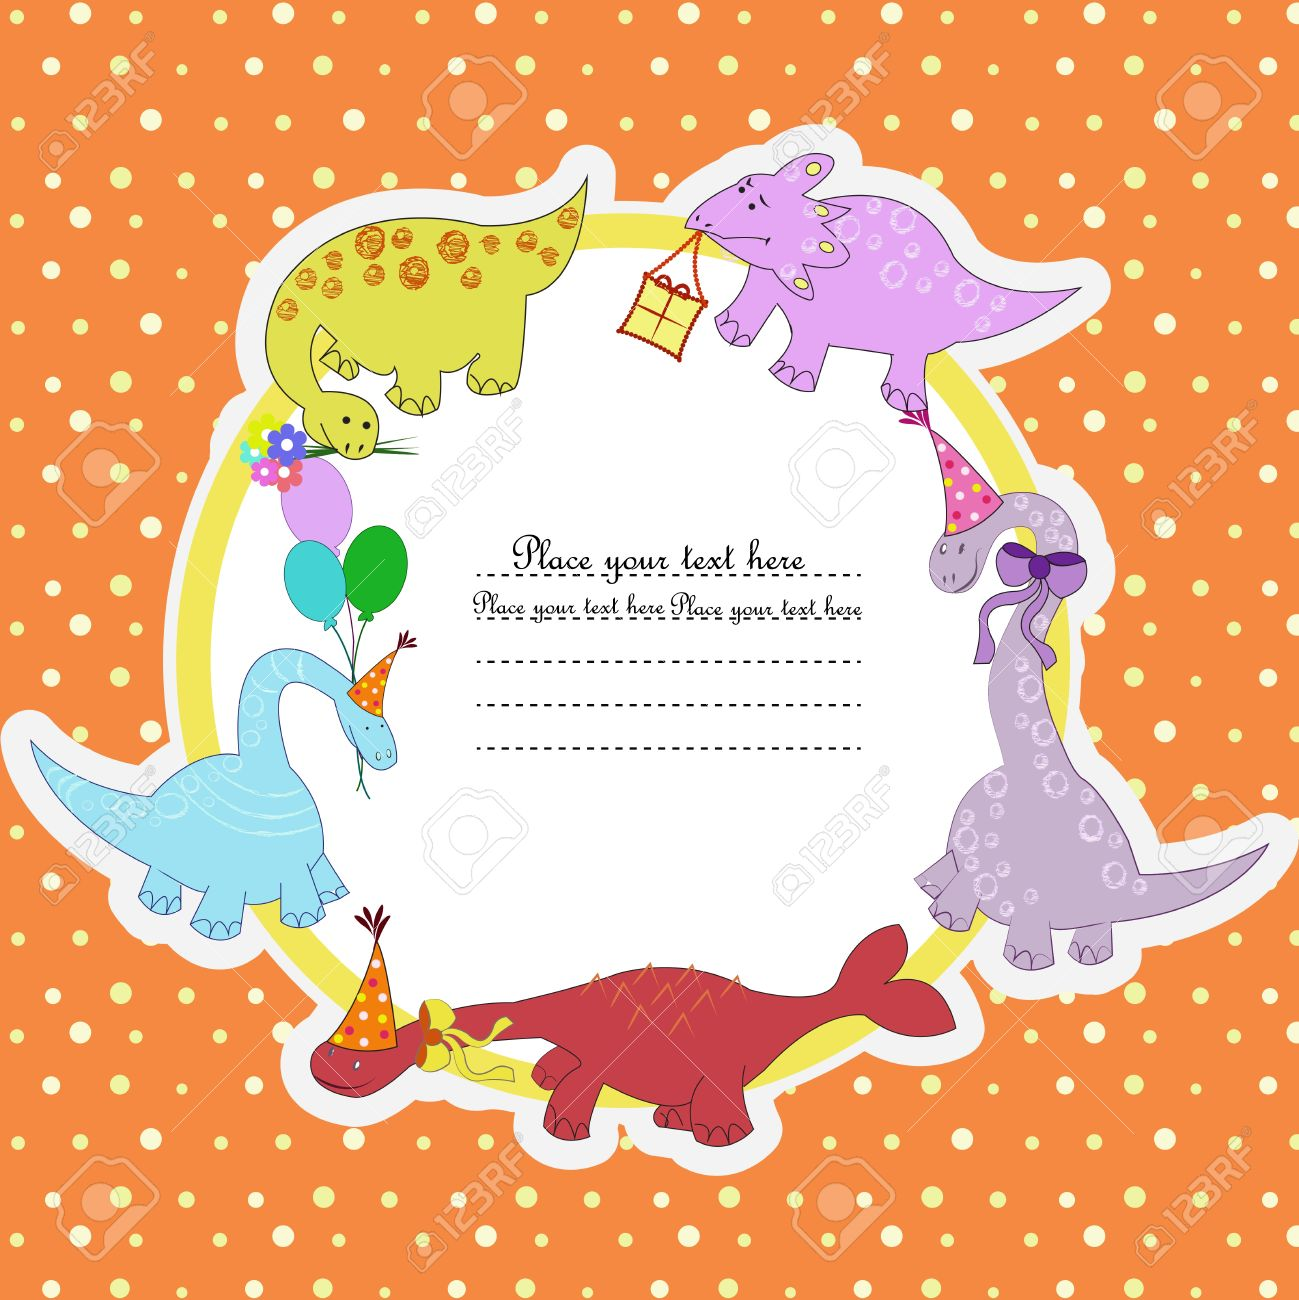 Multi-colored dinosaurs with balloons colors and gifts on a circle on an orange background in white peas Stock Vector - 13270243